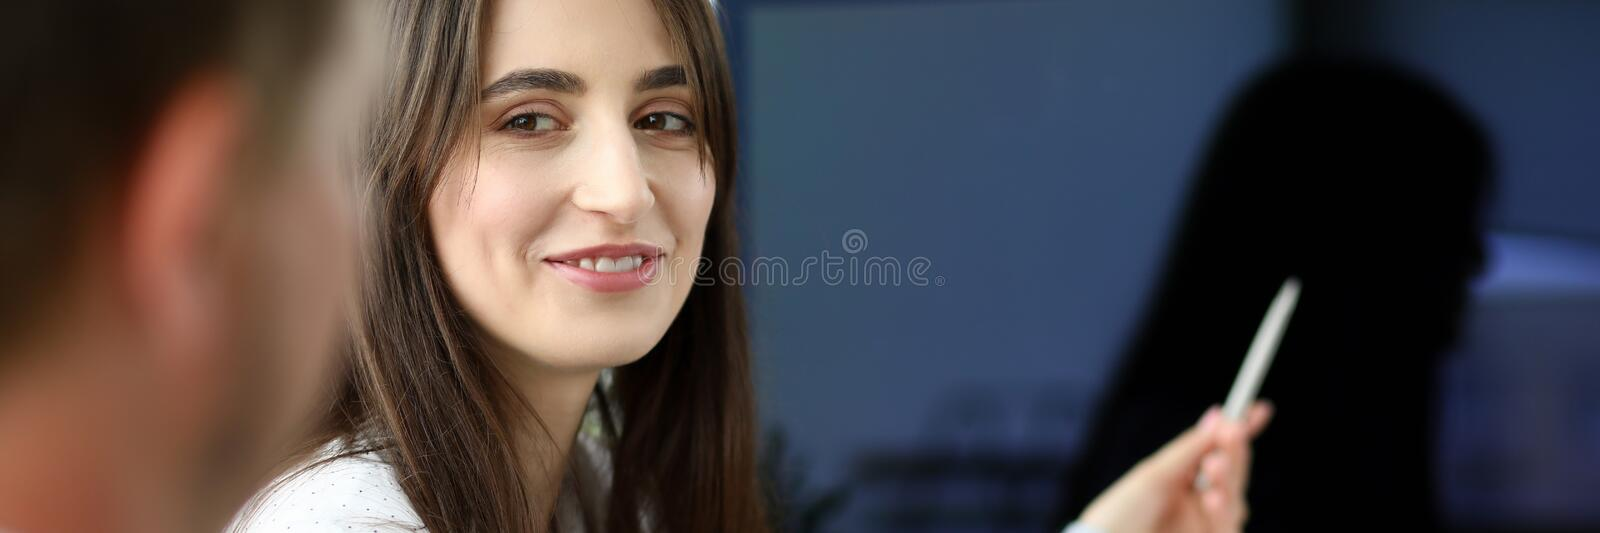 Smiling business female stock photography